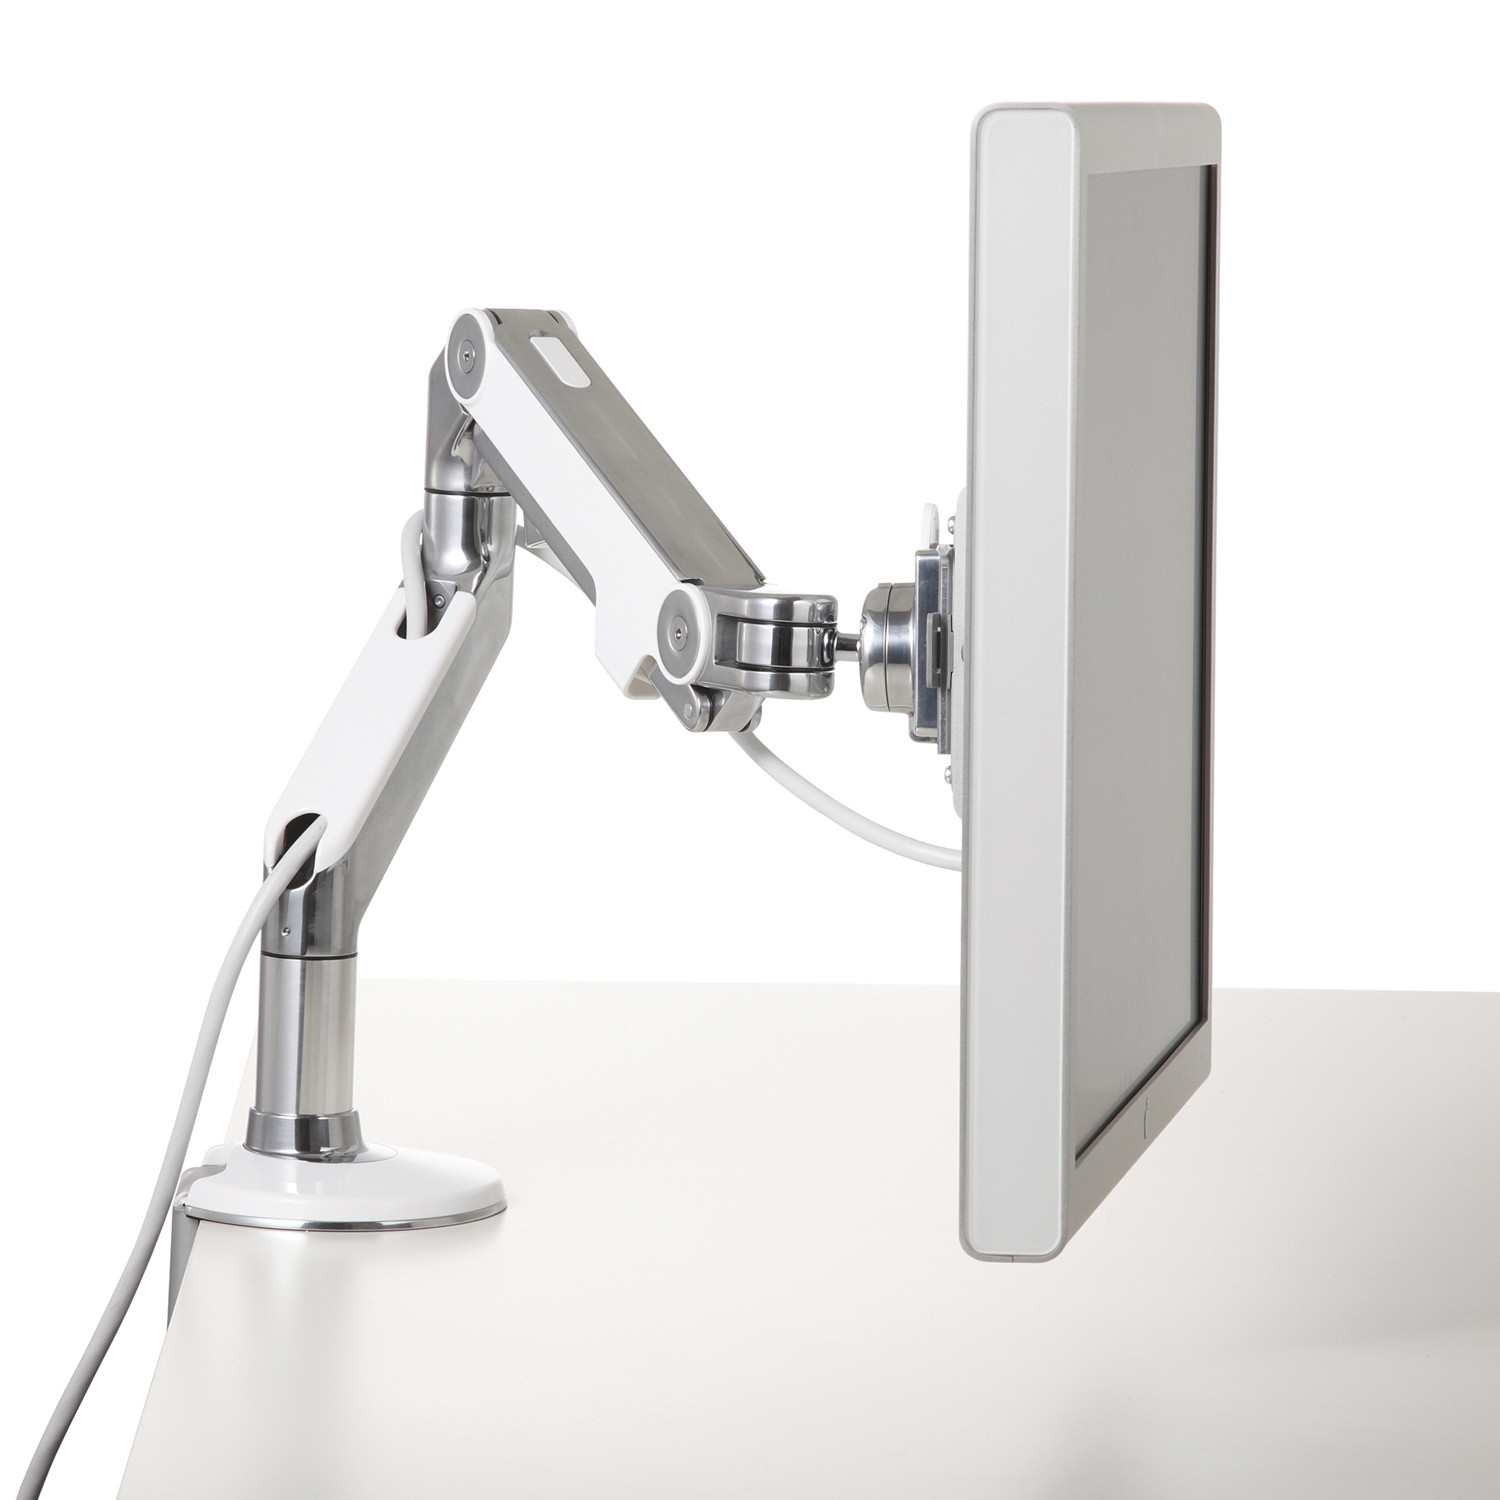 M8 Monitor Arm M8 Articulating Monitor Arm Apres Furniture